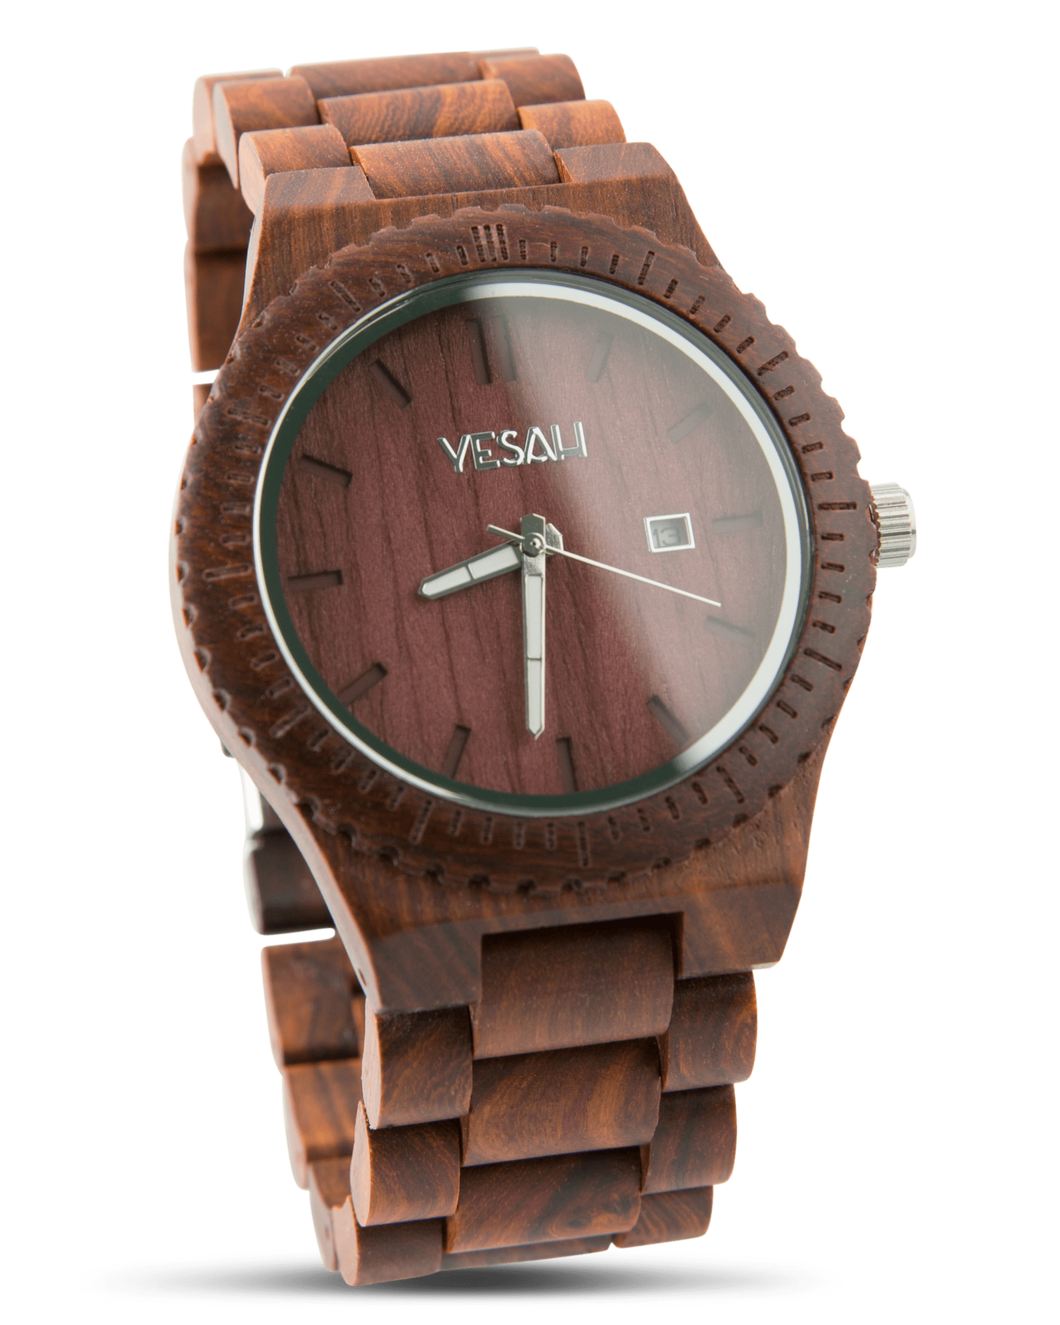 Yesah Hawk Wooden Watch (Silver Edition)